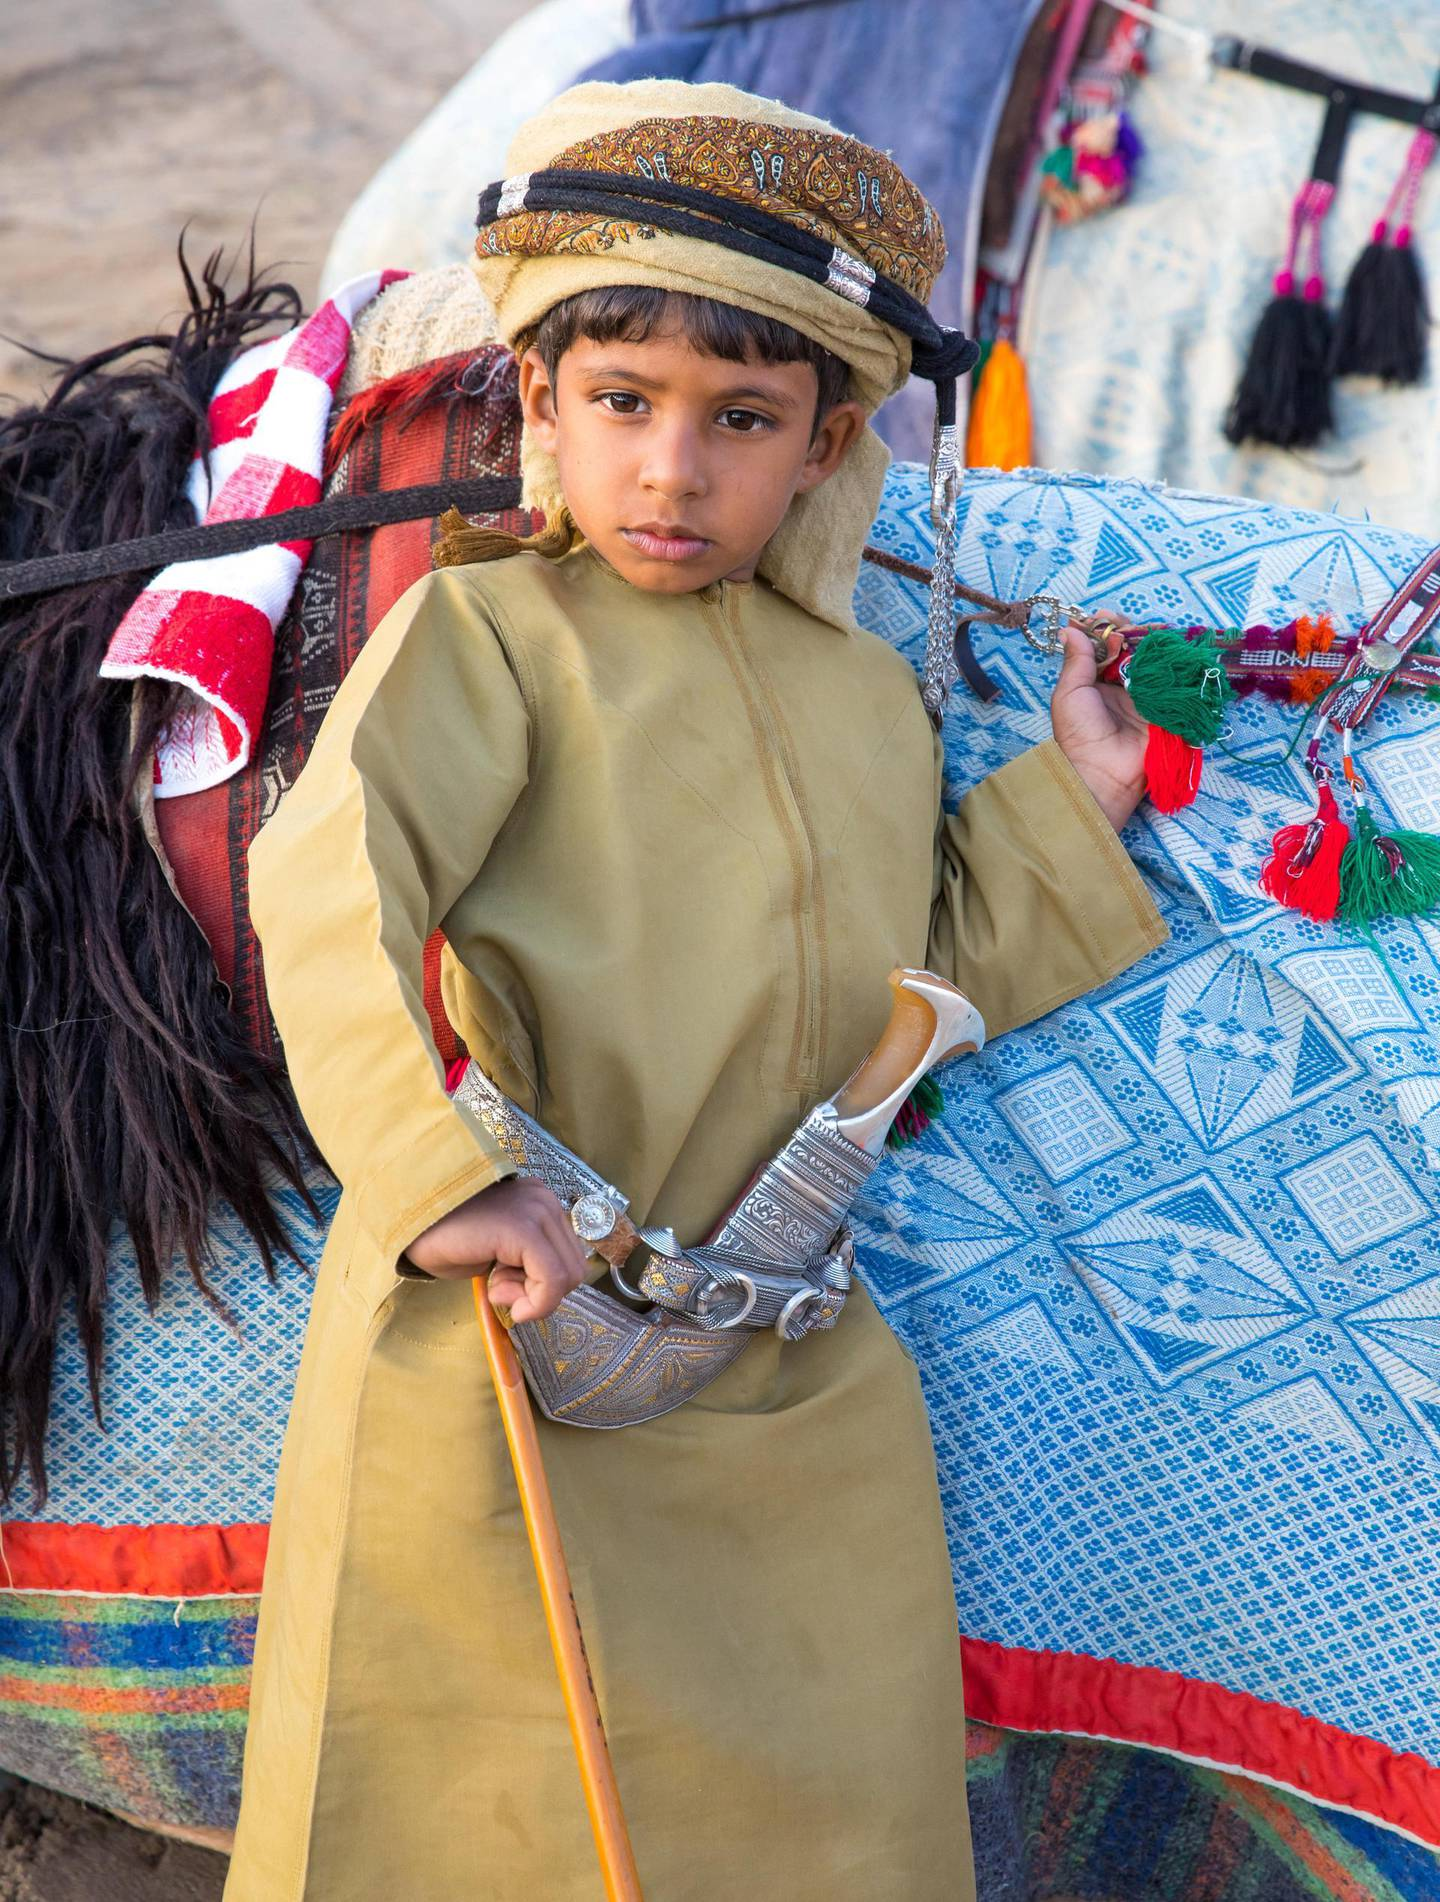 HR57YJ Muscat, Oman - Feb 4, 2017: Young Omani boy dressed in traditional clothing posing next to his camel.